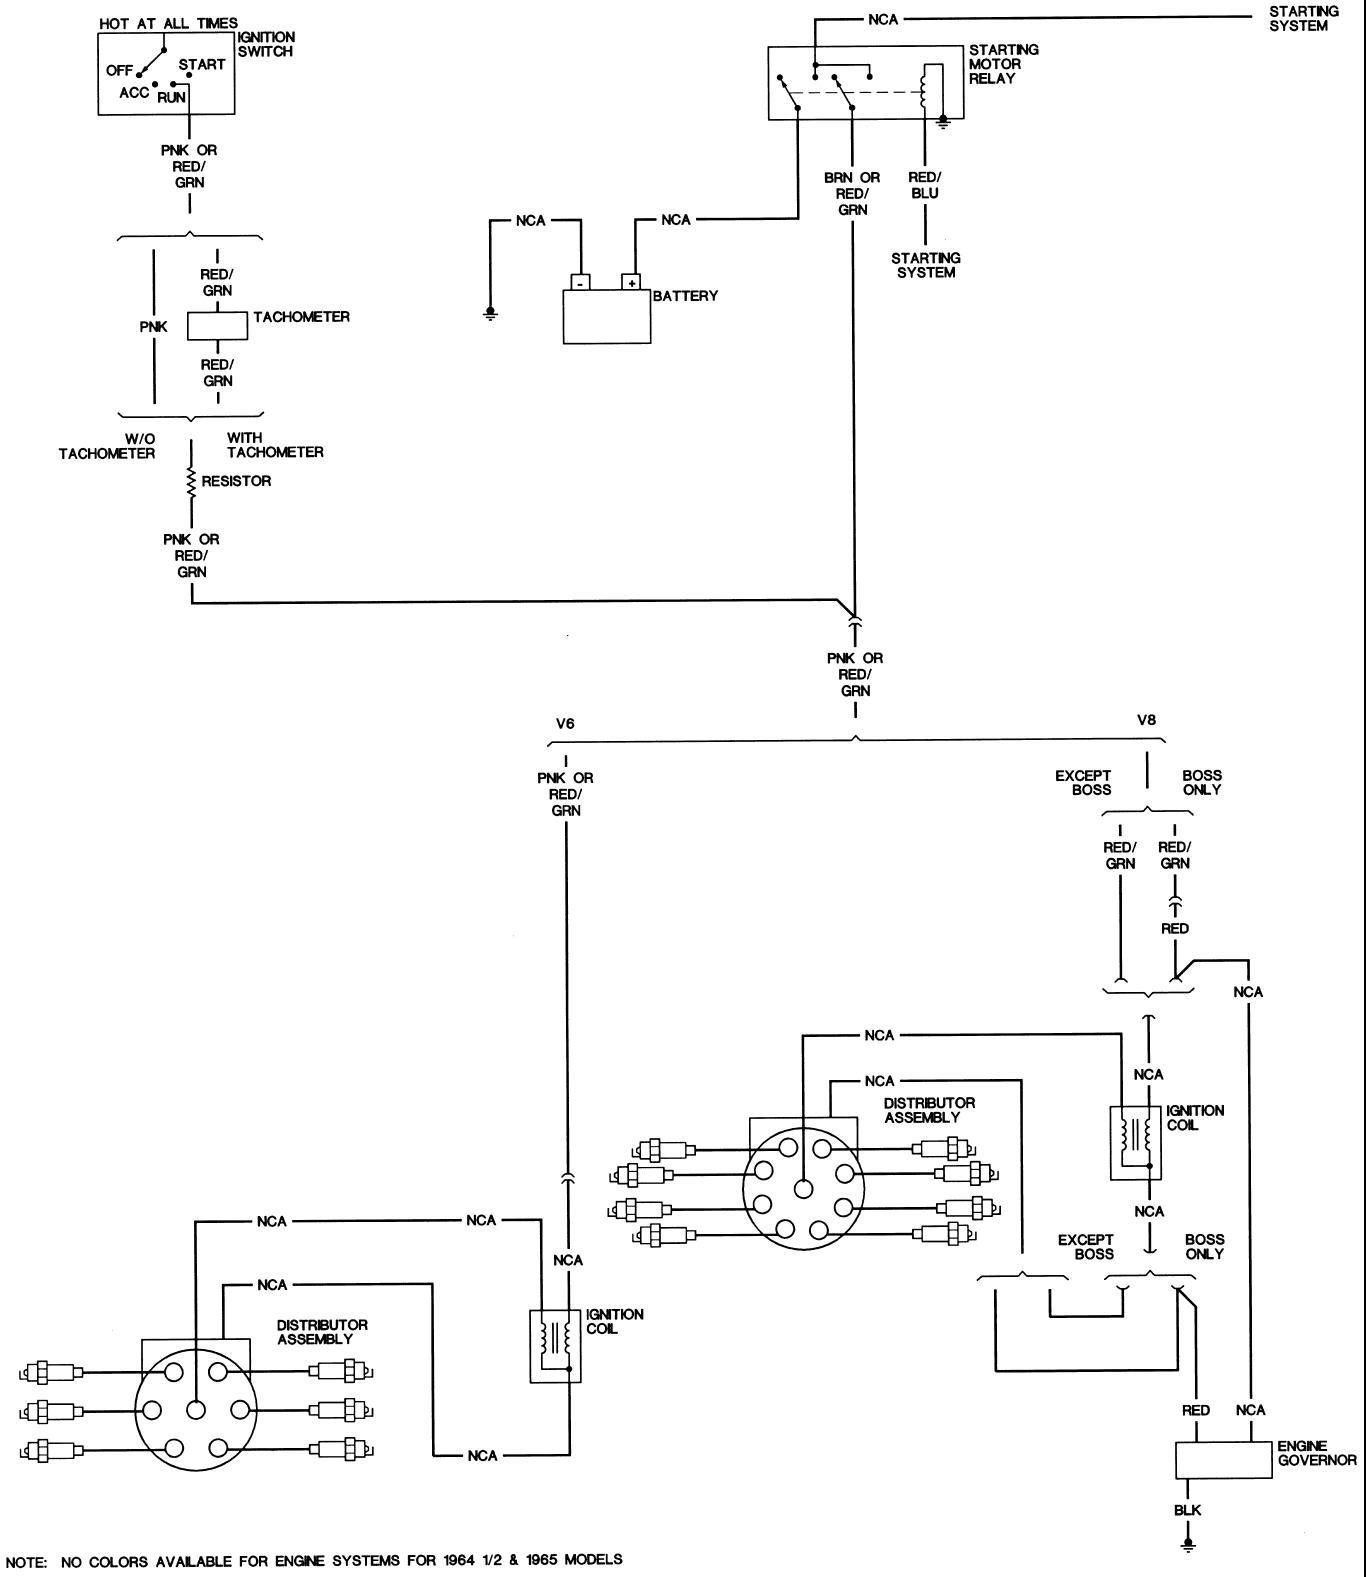 70 Ford Mustang Electrical Diagram Another Blog About Wiring 5 3 Vortec Crate Engine With Harness Free Get Image